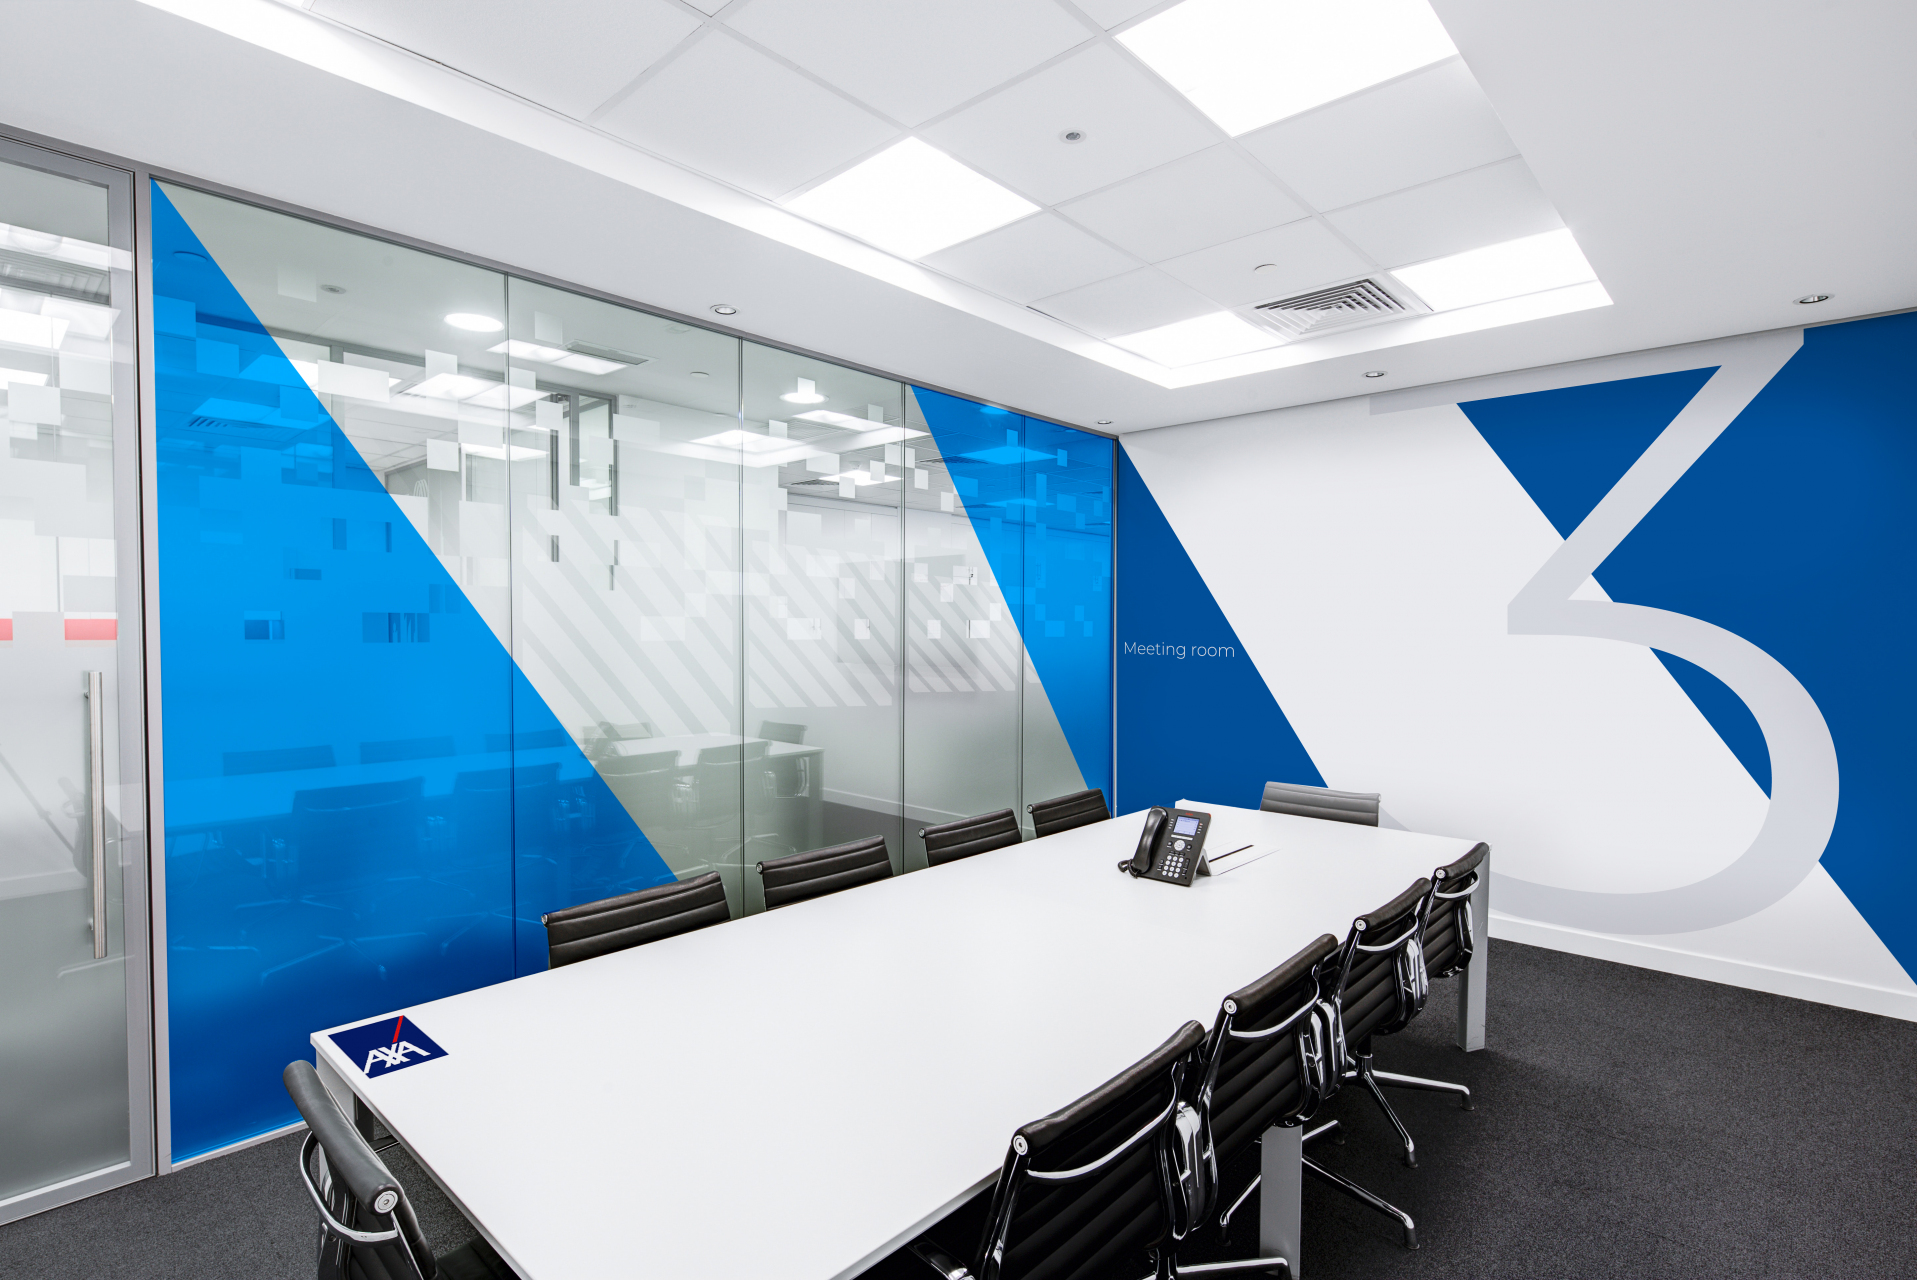 AXA_signage-on-office-interior